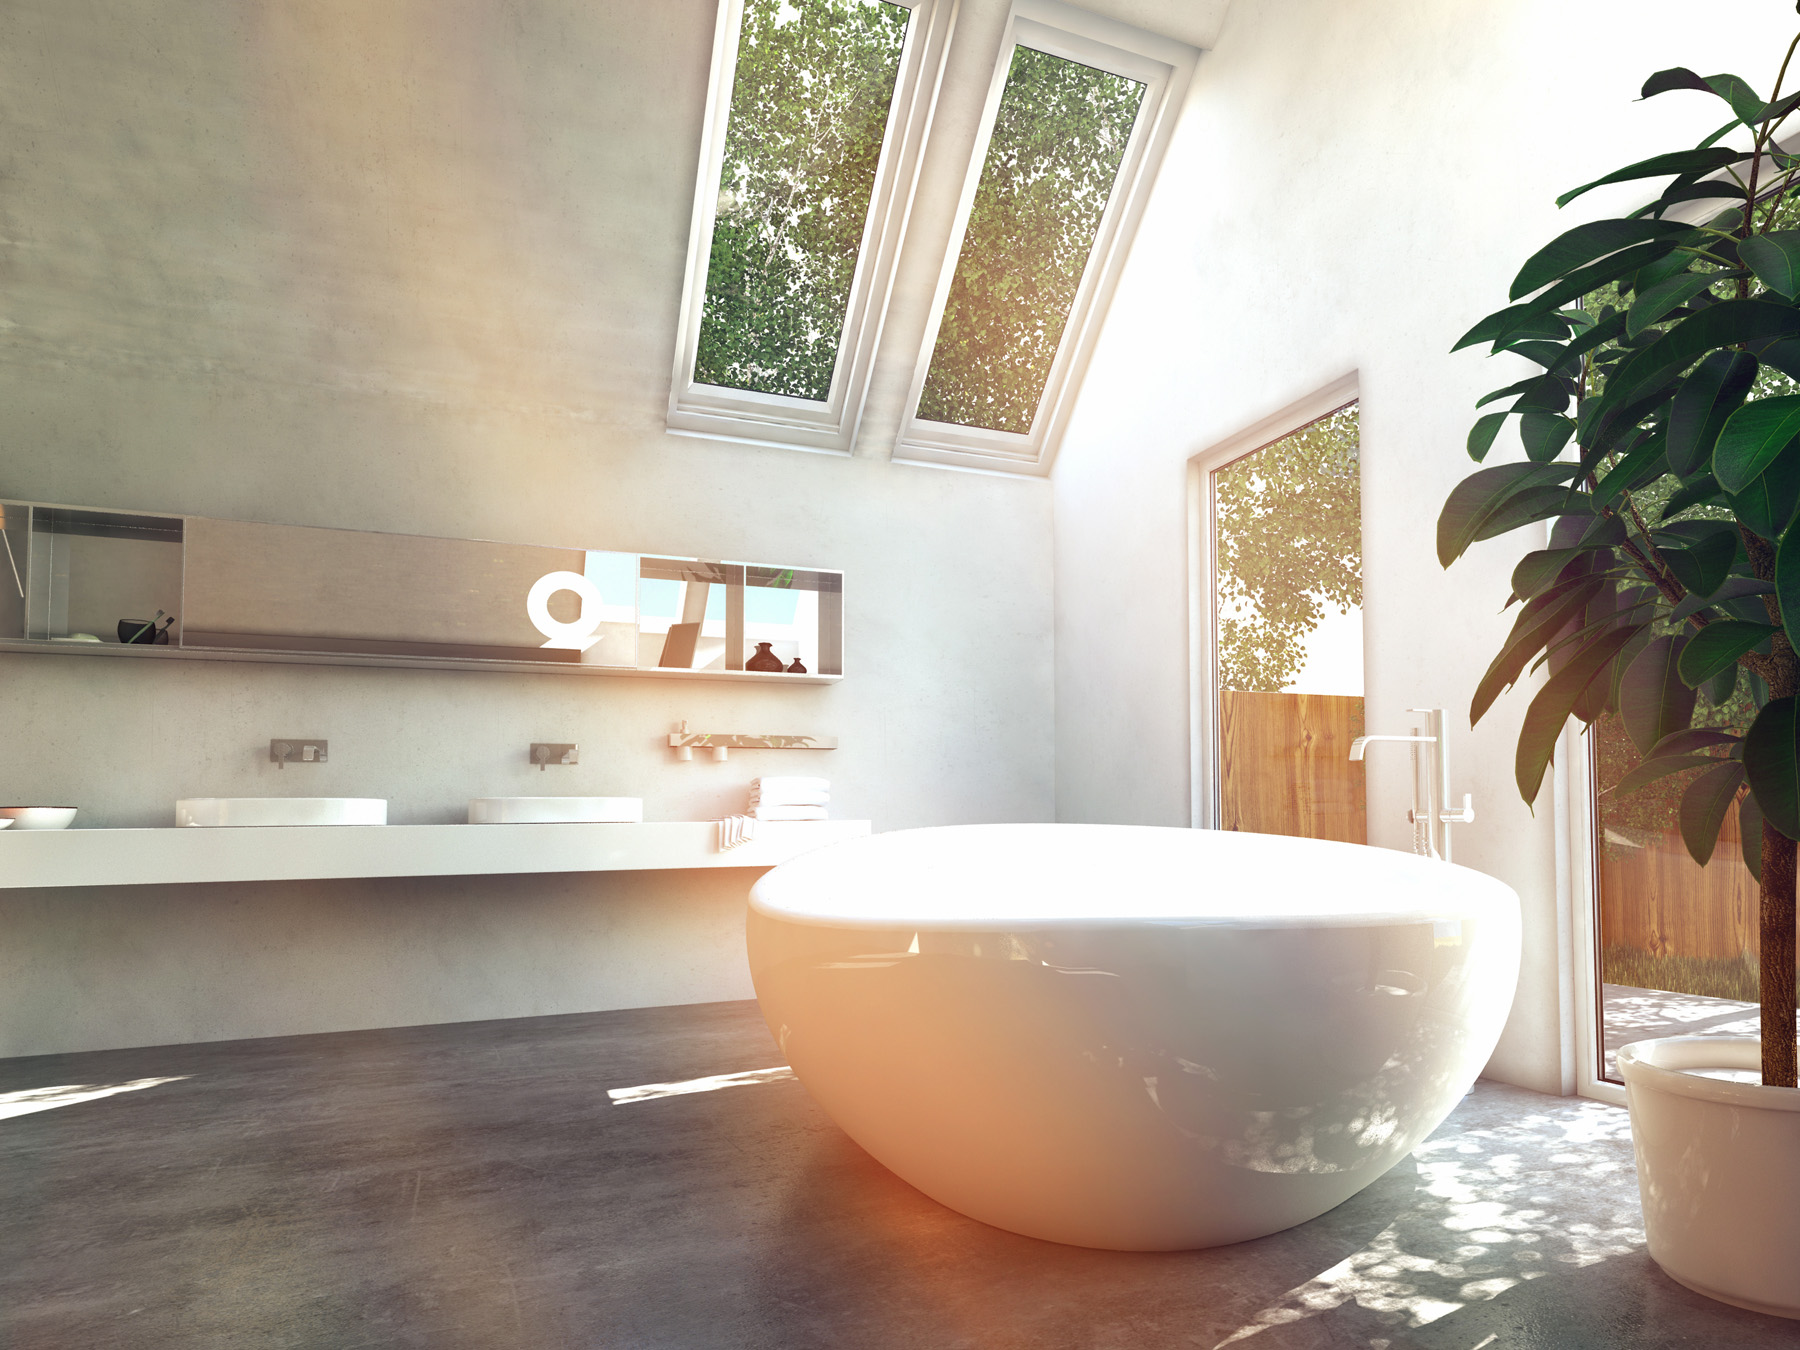 The washbasin in the room and bath 51741